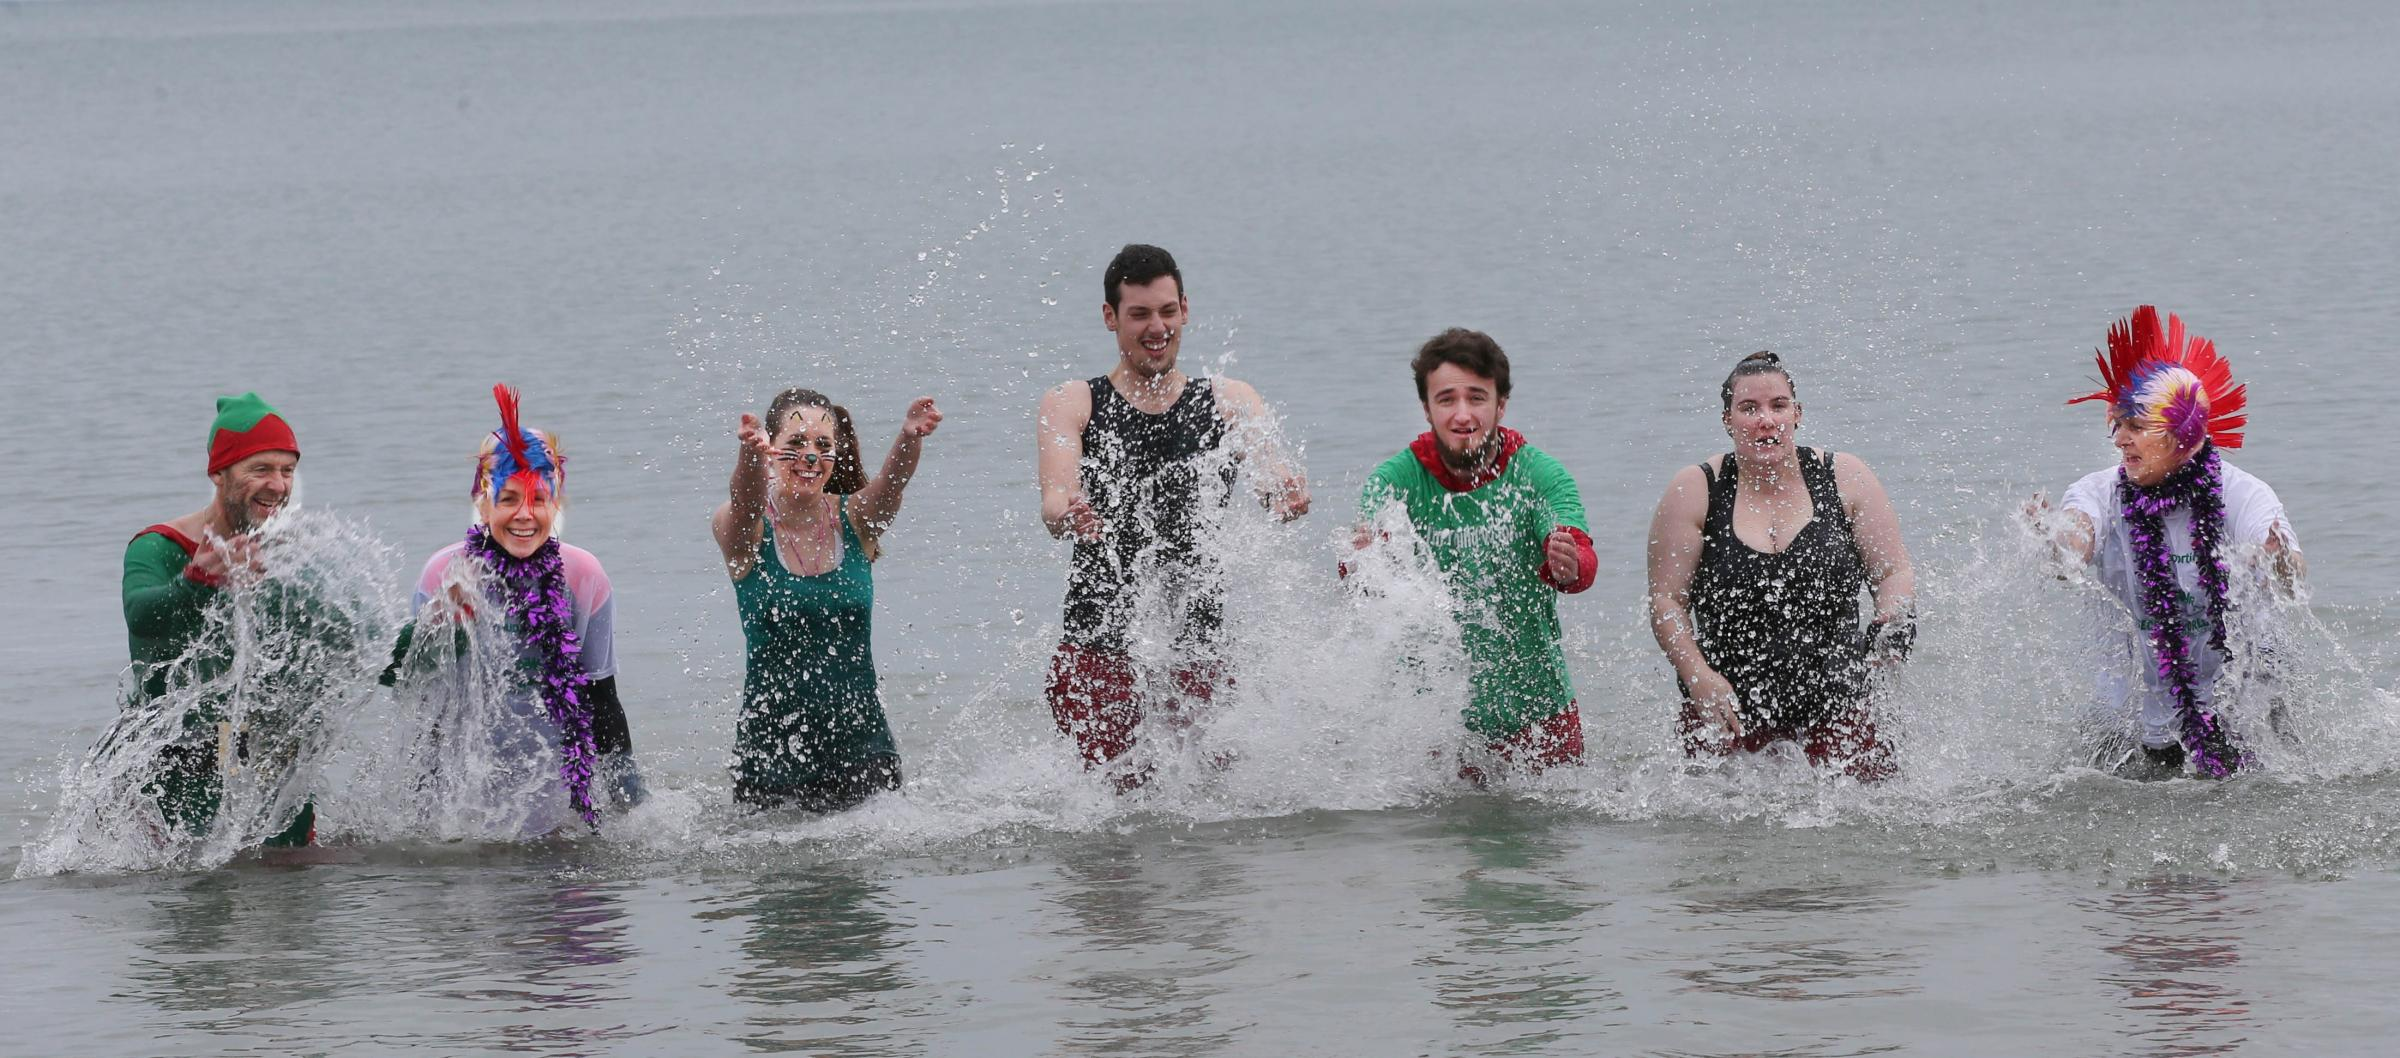 TAKING A DIP: Staff and volunteers at Secret World Wildlife Rescue take a dip in the sea in Lyme Regis